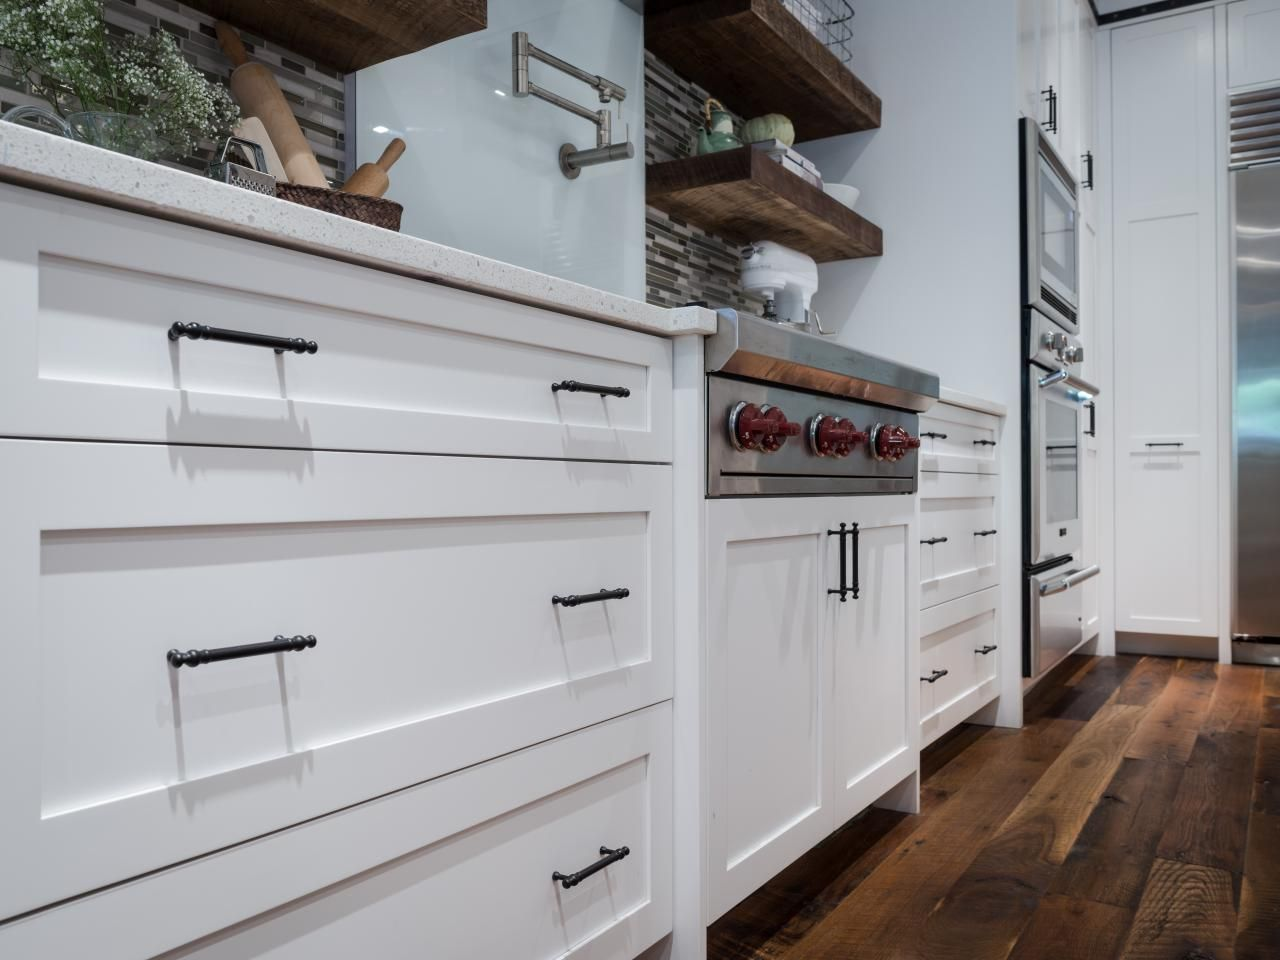 Shaker Kitchen Cabinets Pictures Ideas Tips From Hgtv: Find The Best Of Beckwith Interiors From HGTV